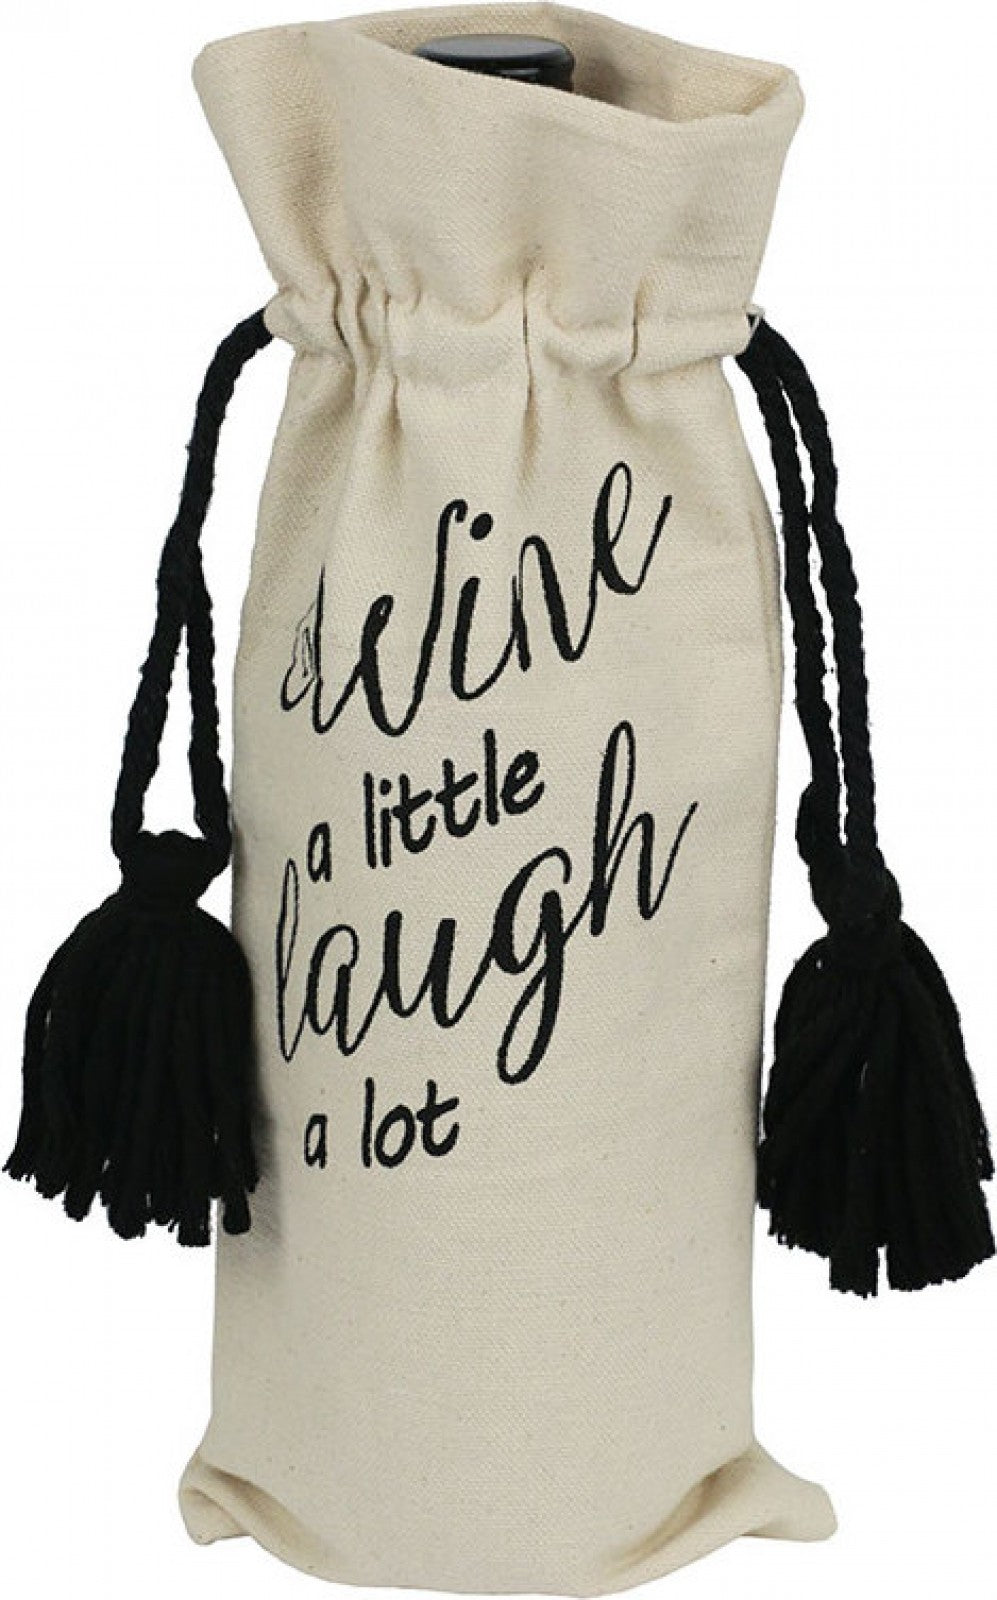 Bottle Bag Wine Laugh